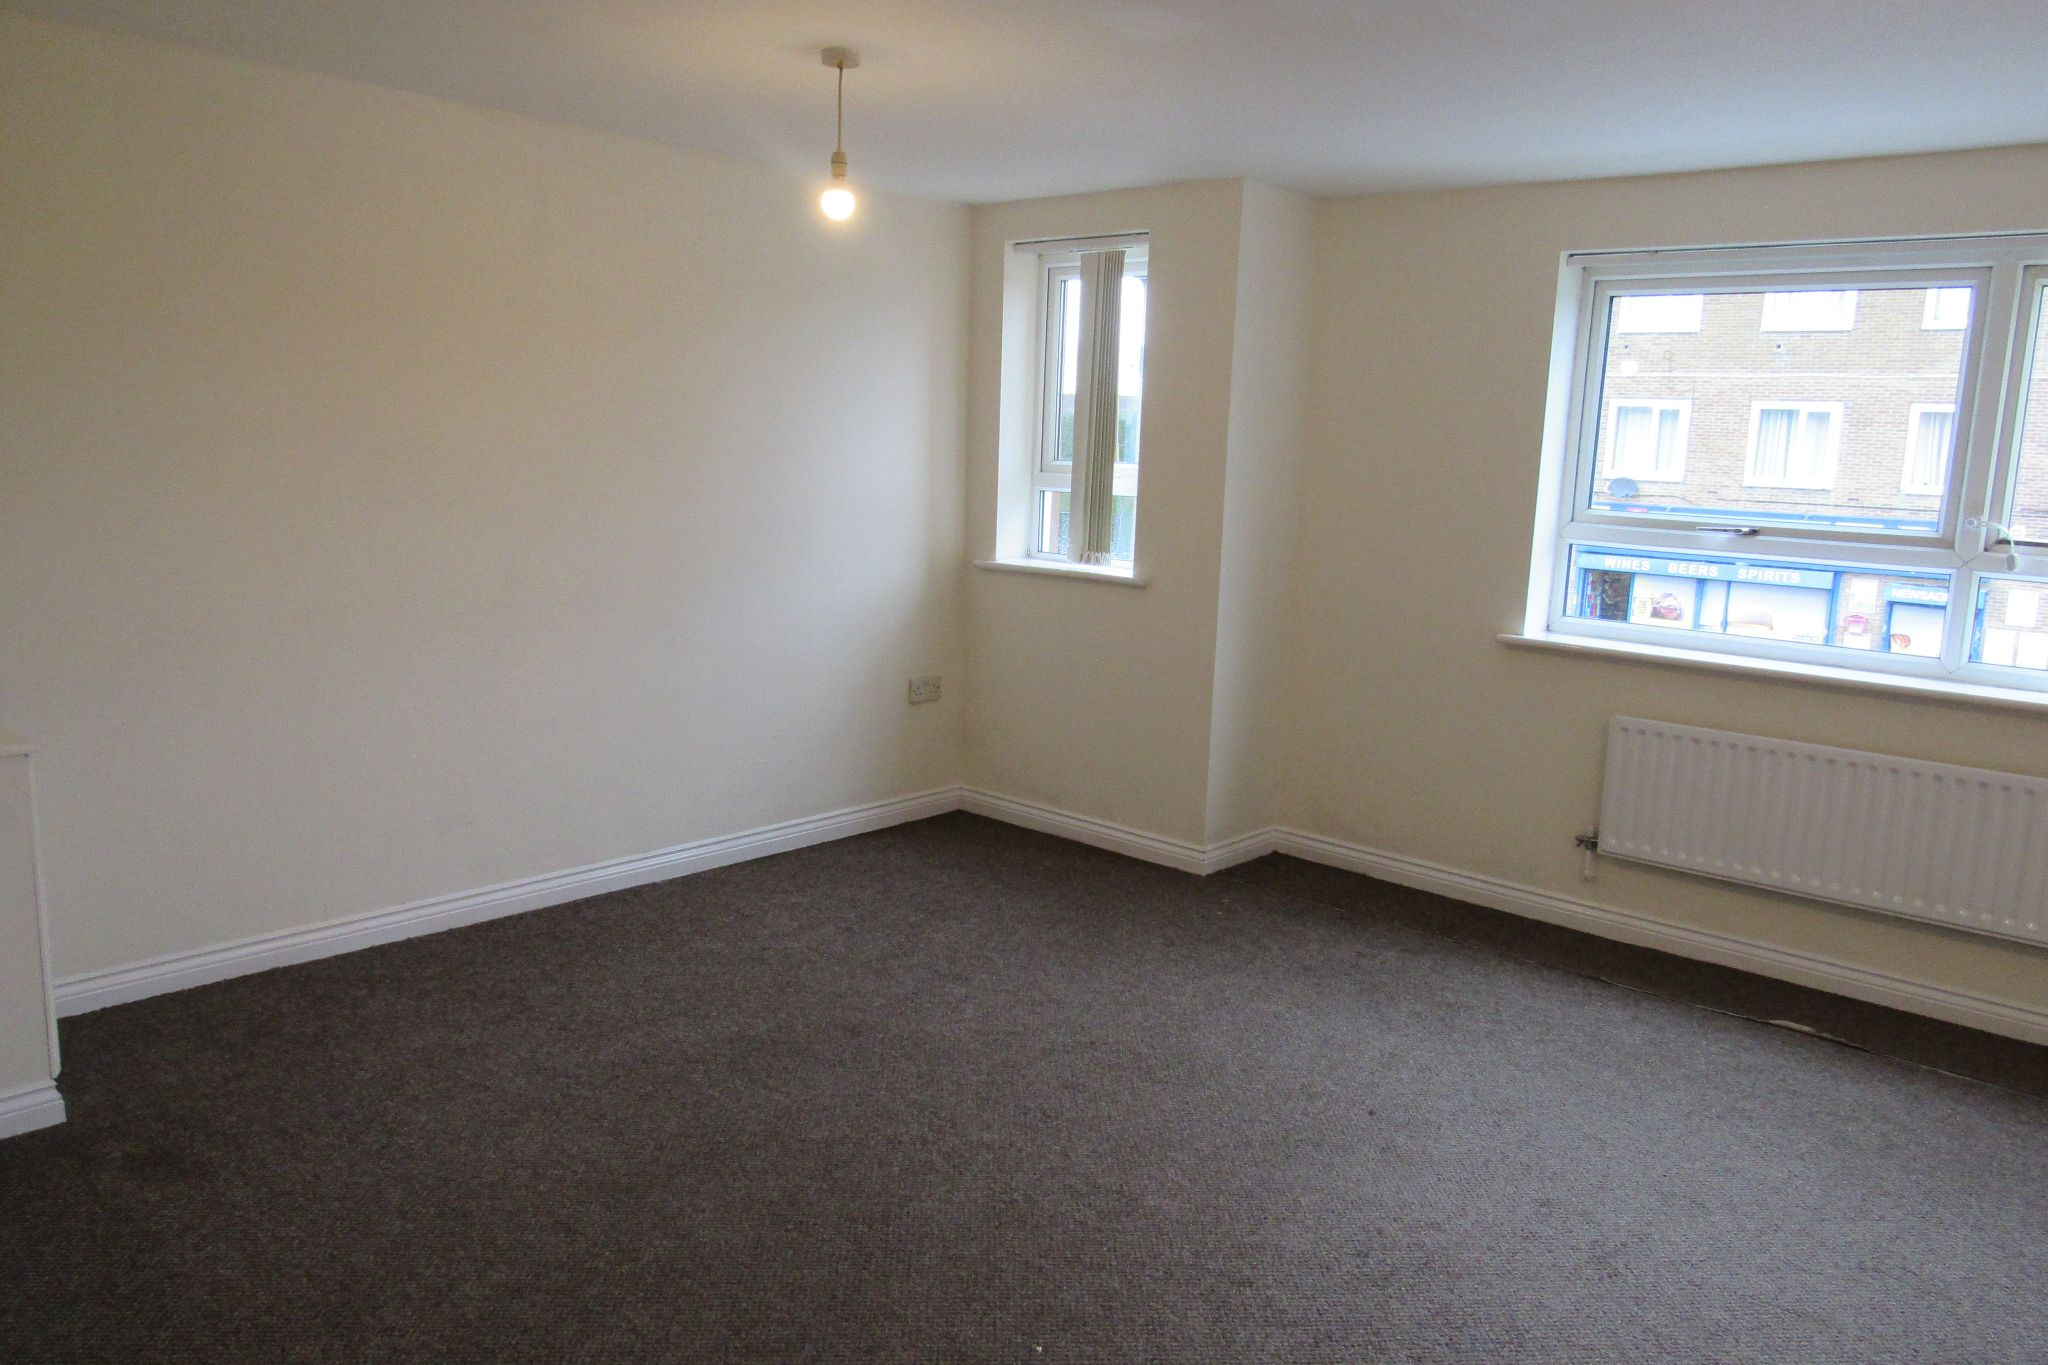 2 bedroom apartment flat/apartment SSTC in Manchester - Photograph 2.